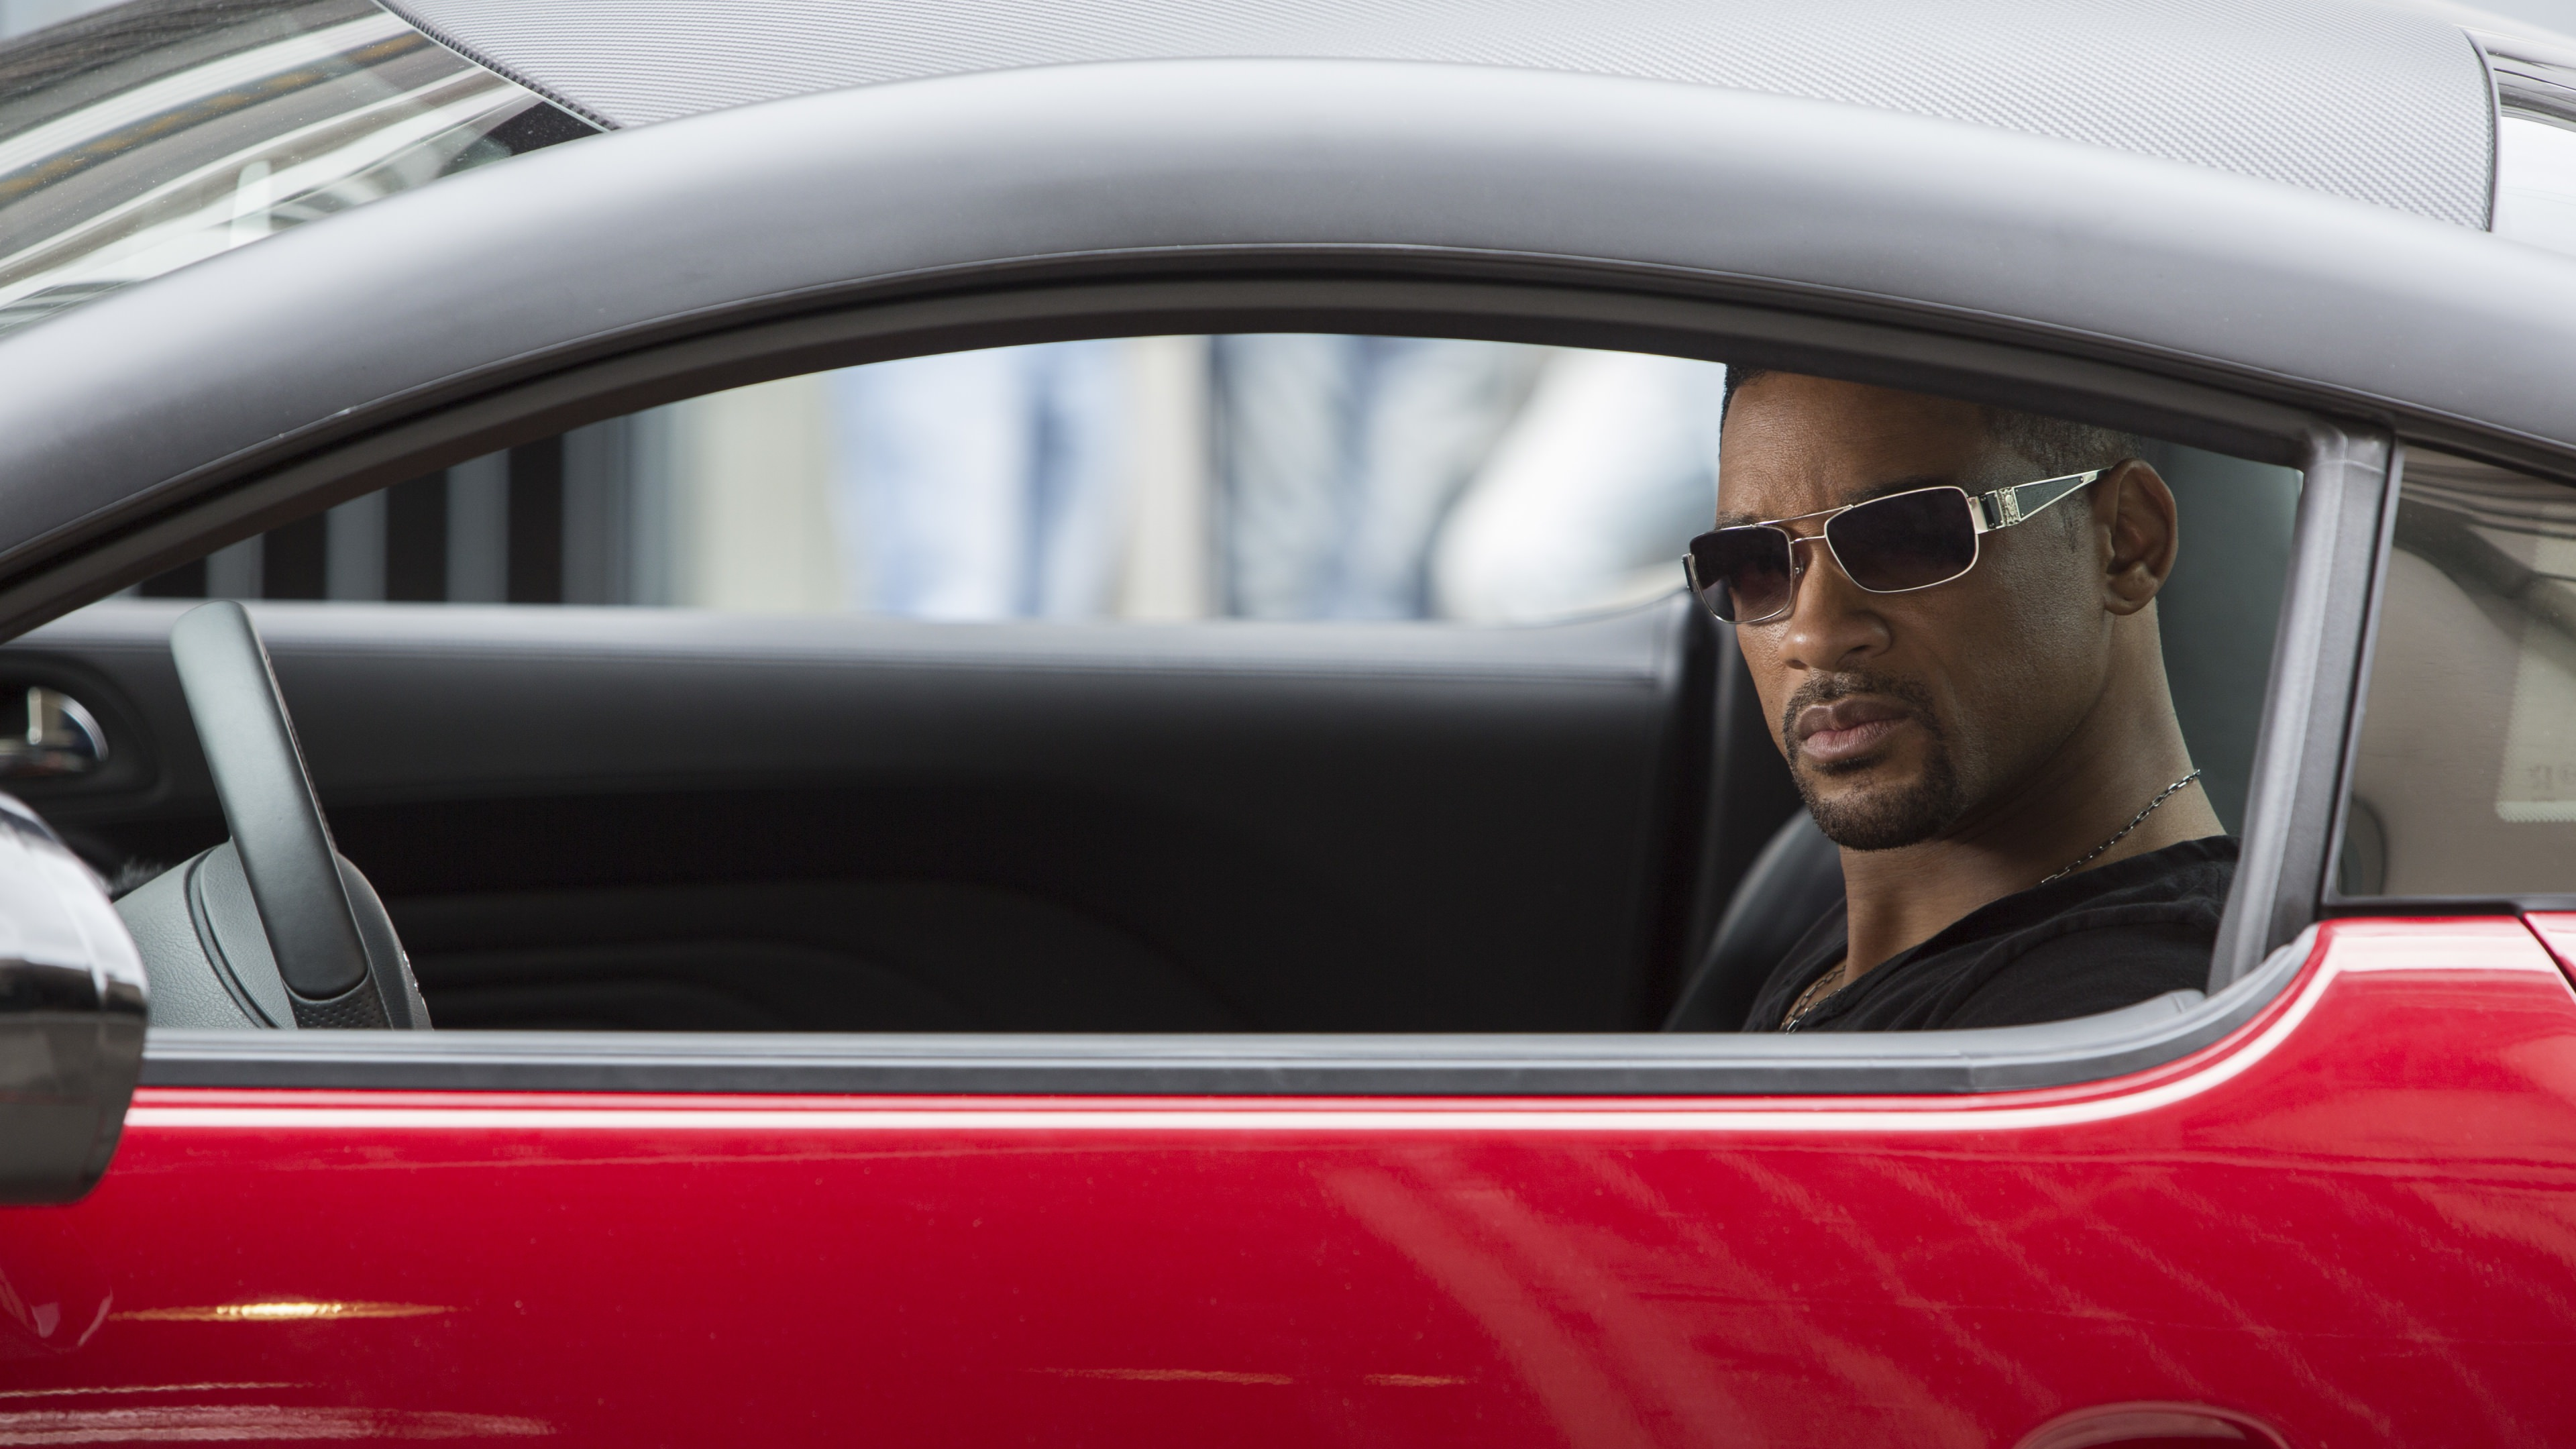 Will Smith at the Shooting of Focus wallpaper